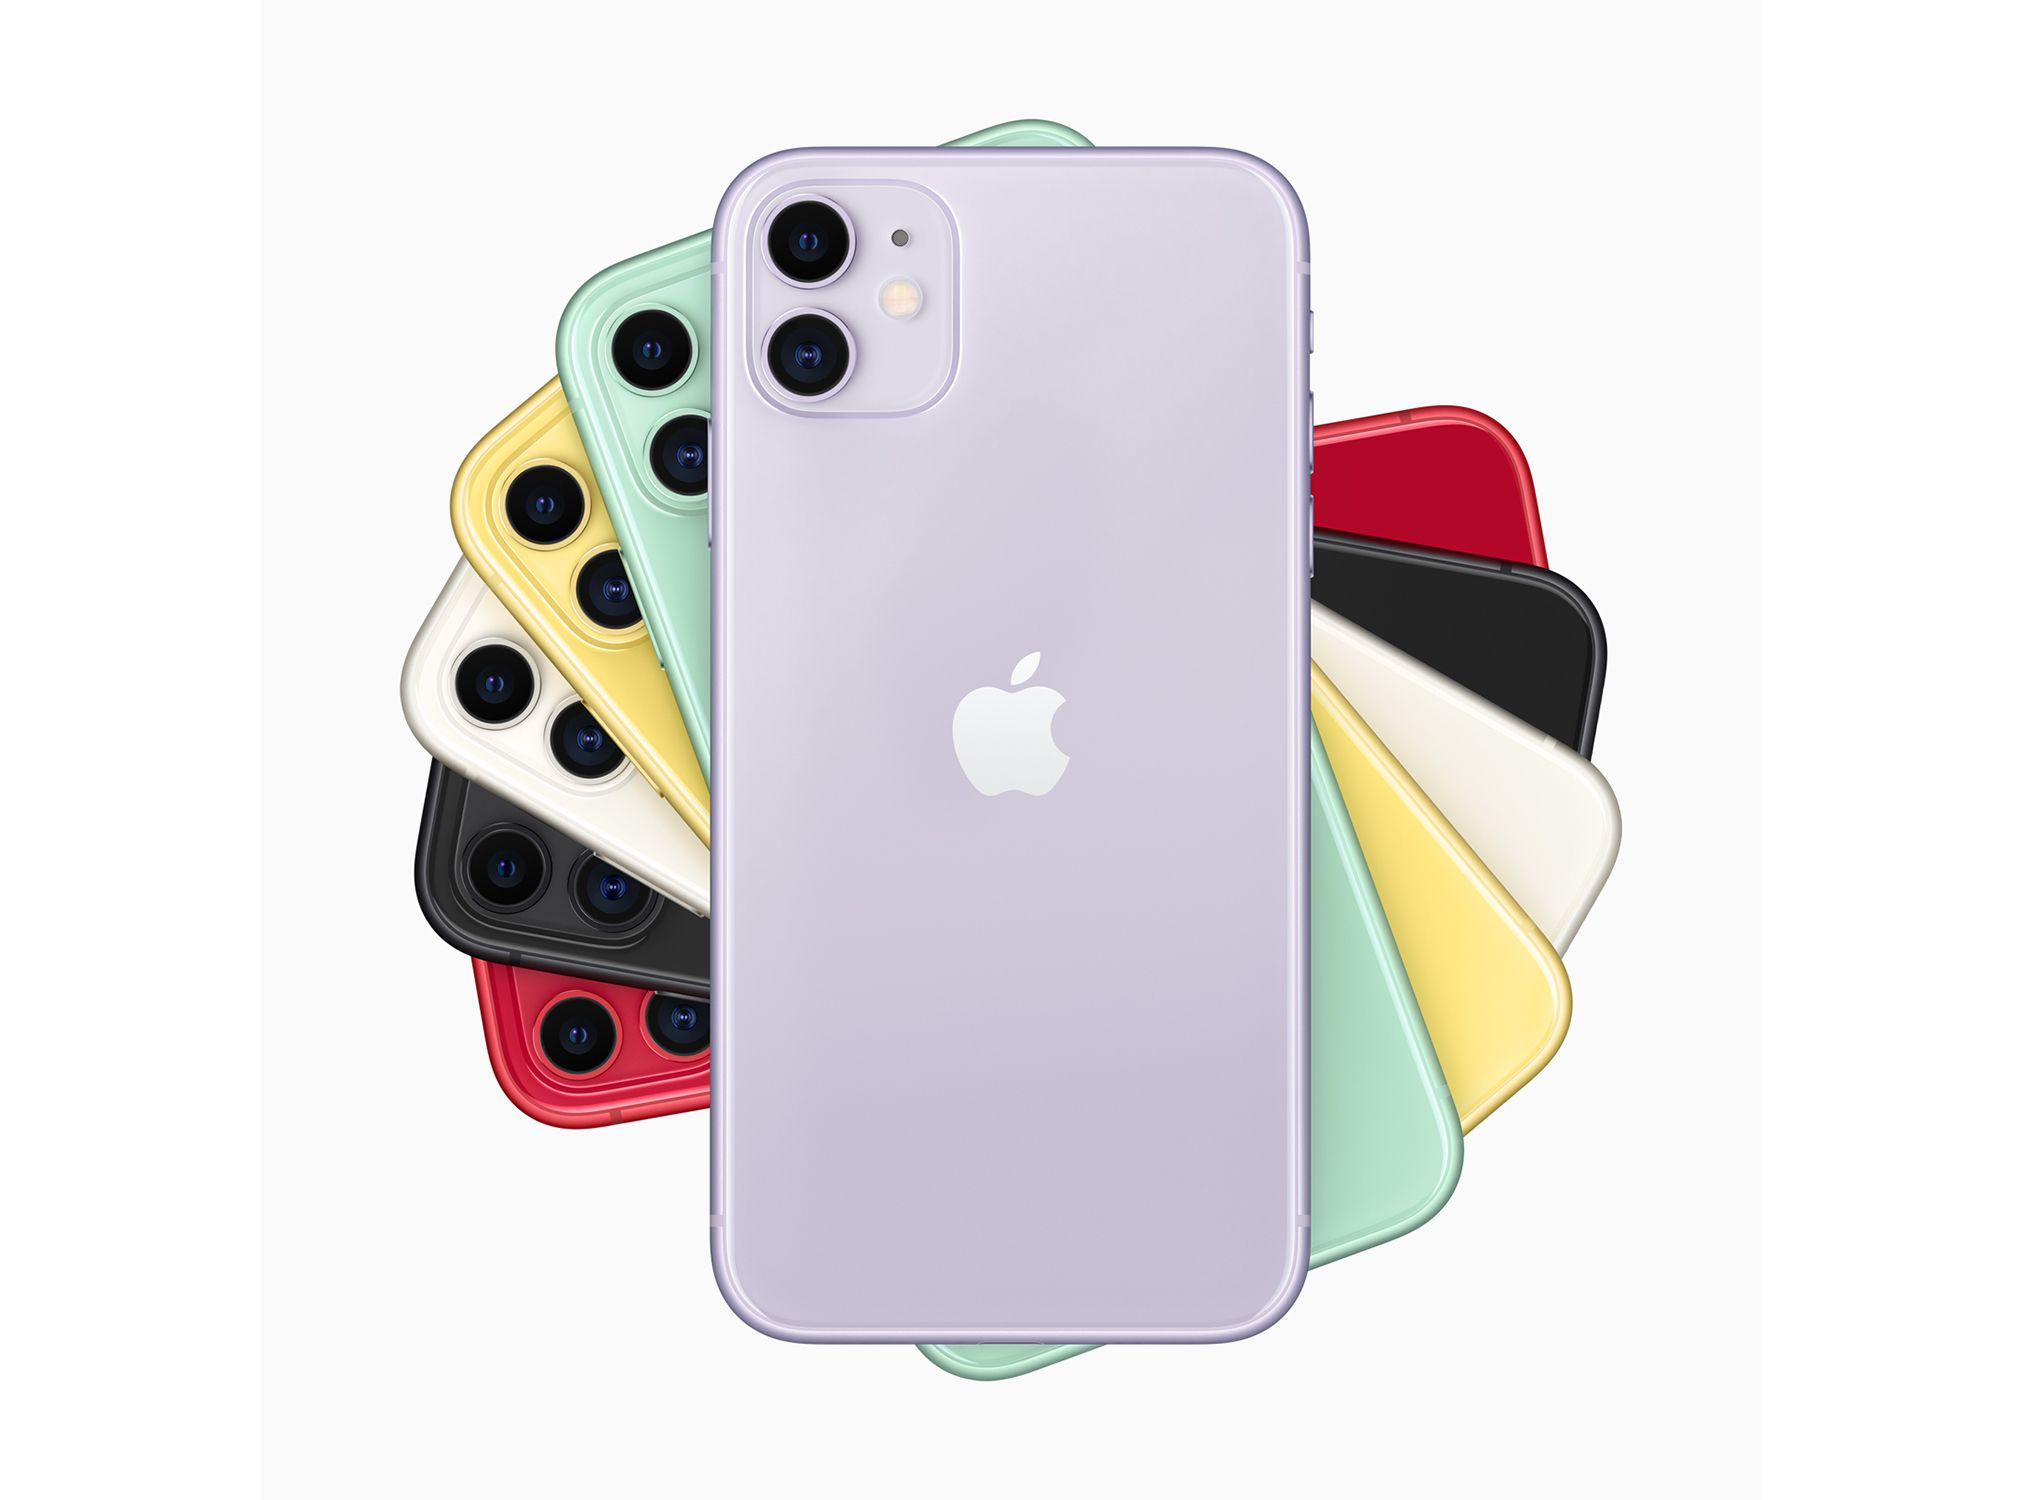 The six colors of the iPhone 11